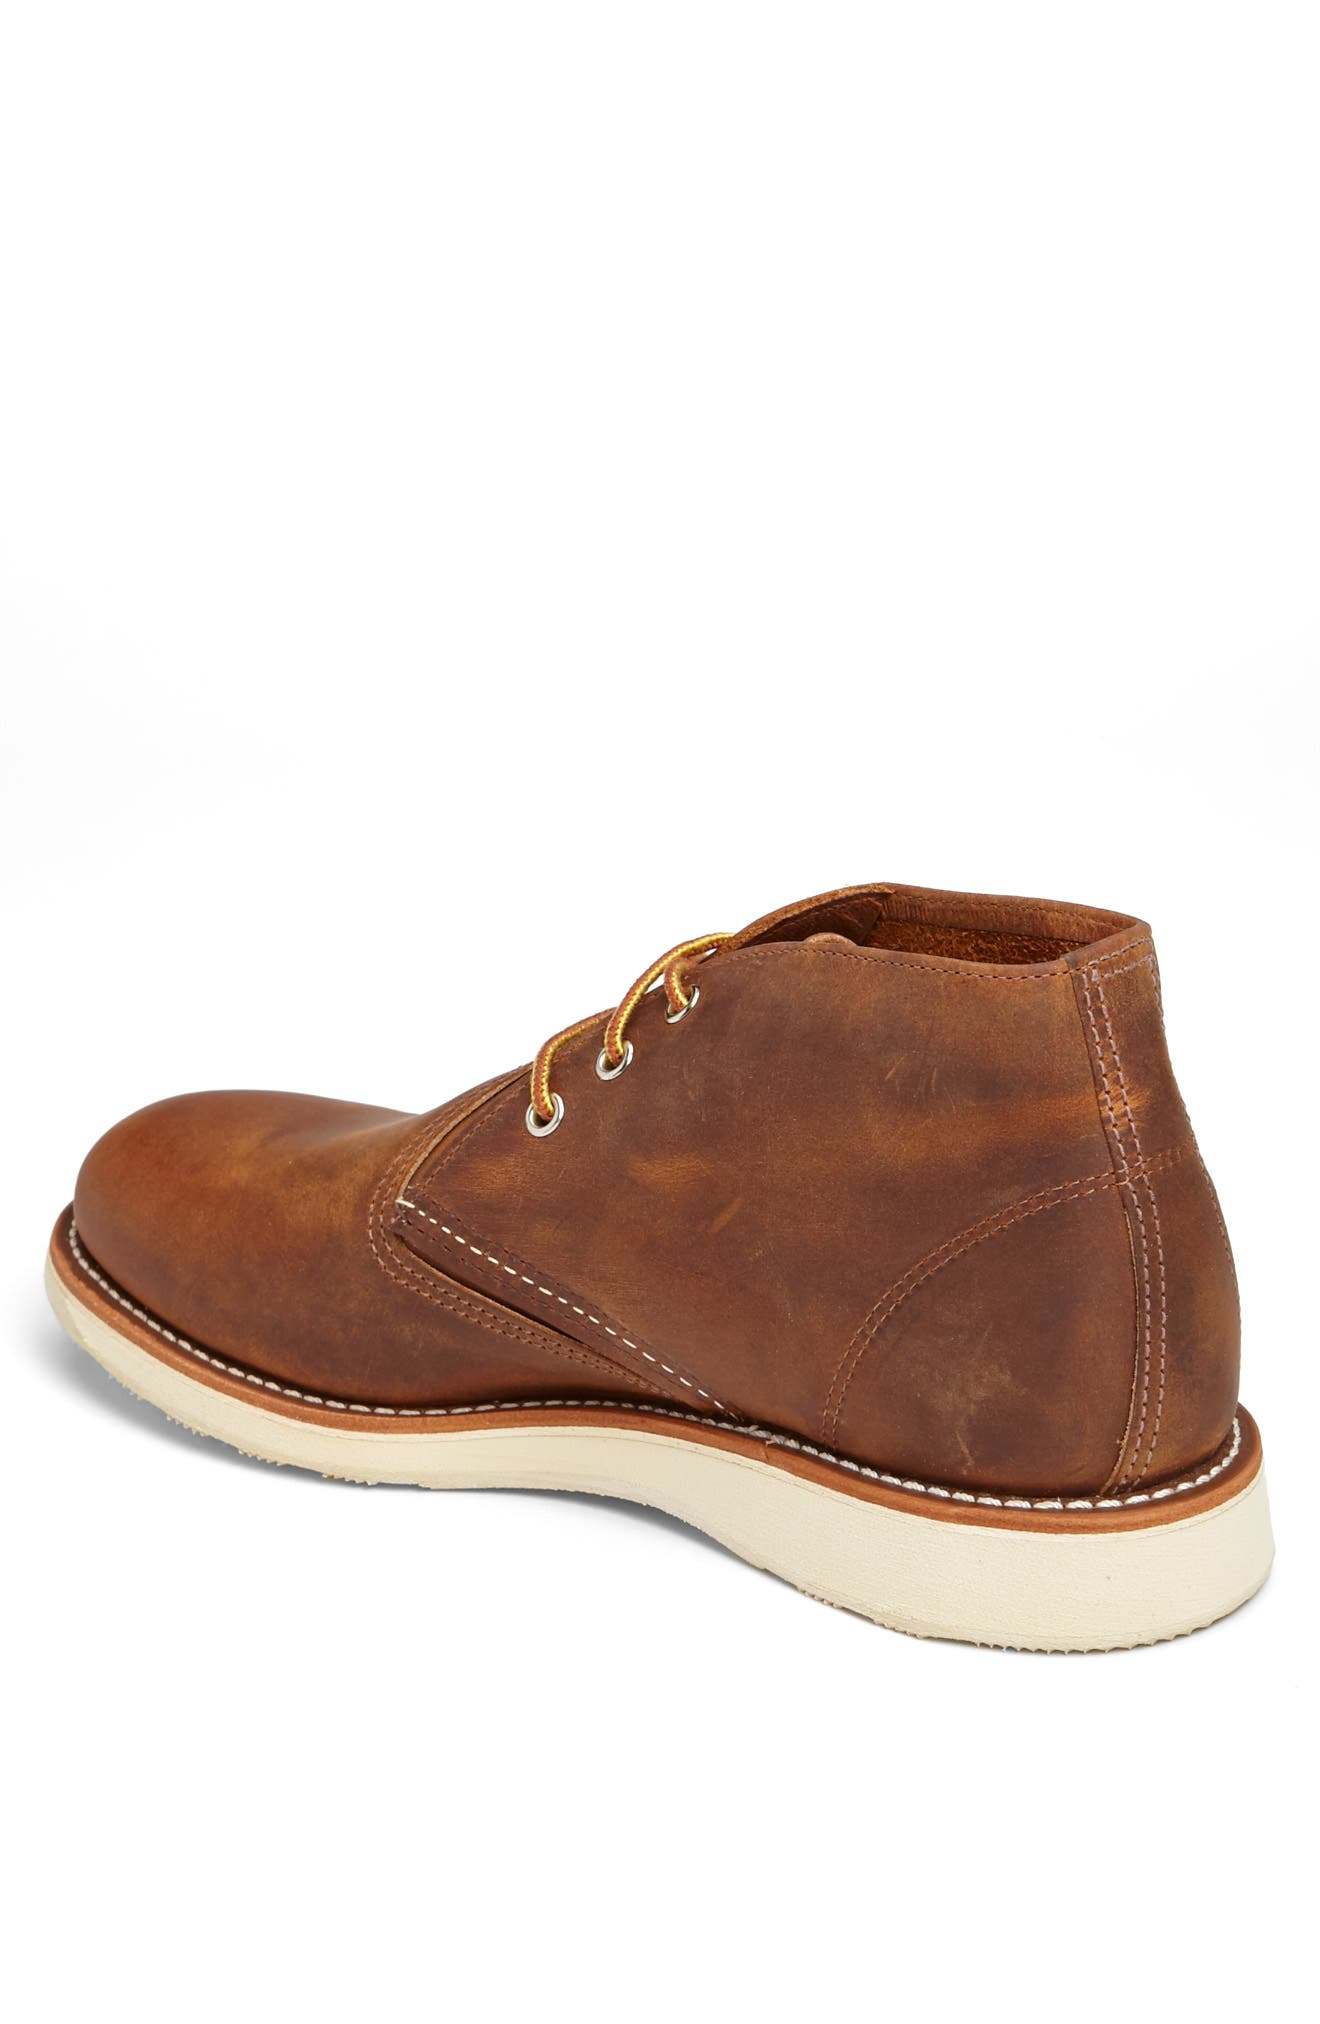 'Classic' Chukka Boot,                             Alternate thumbnail 2, color,                             Copper